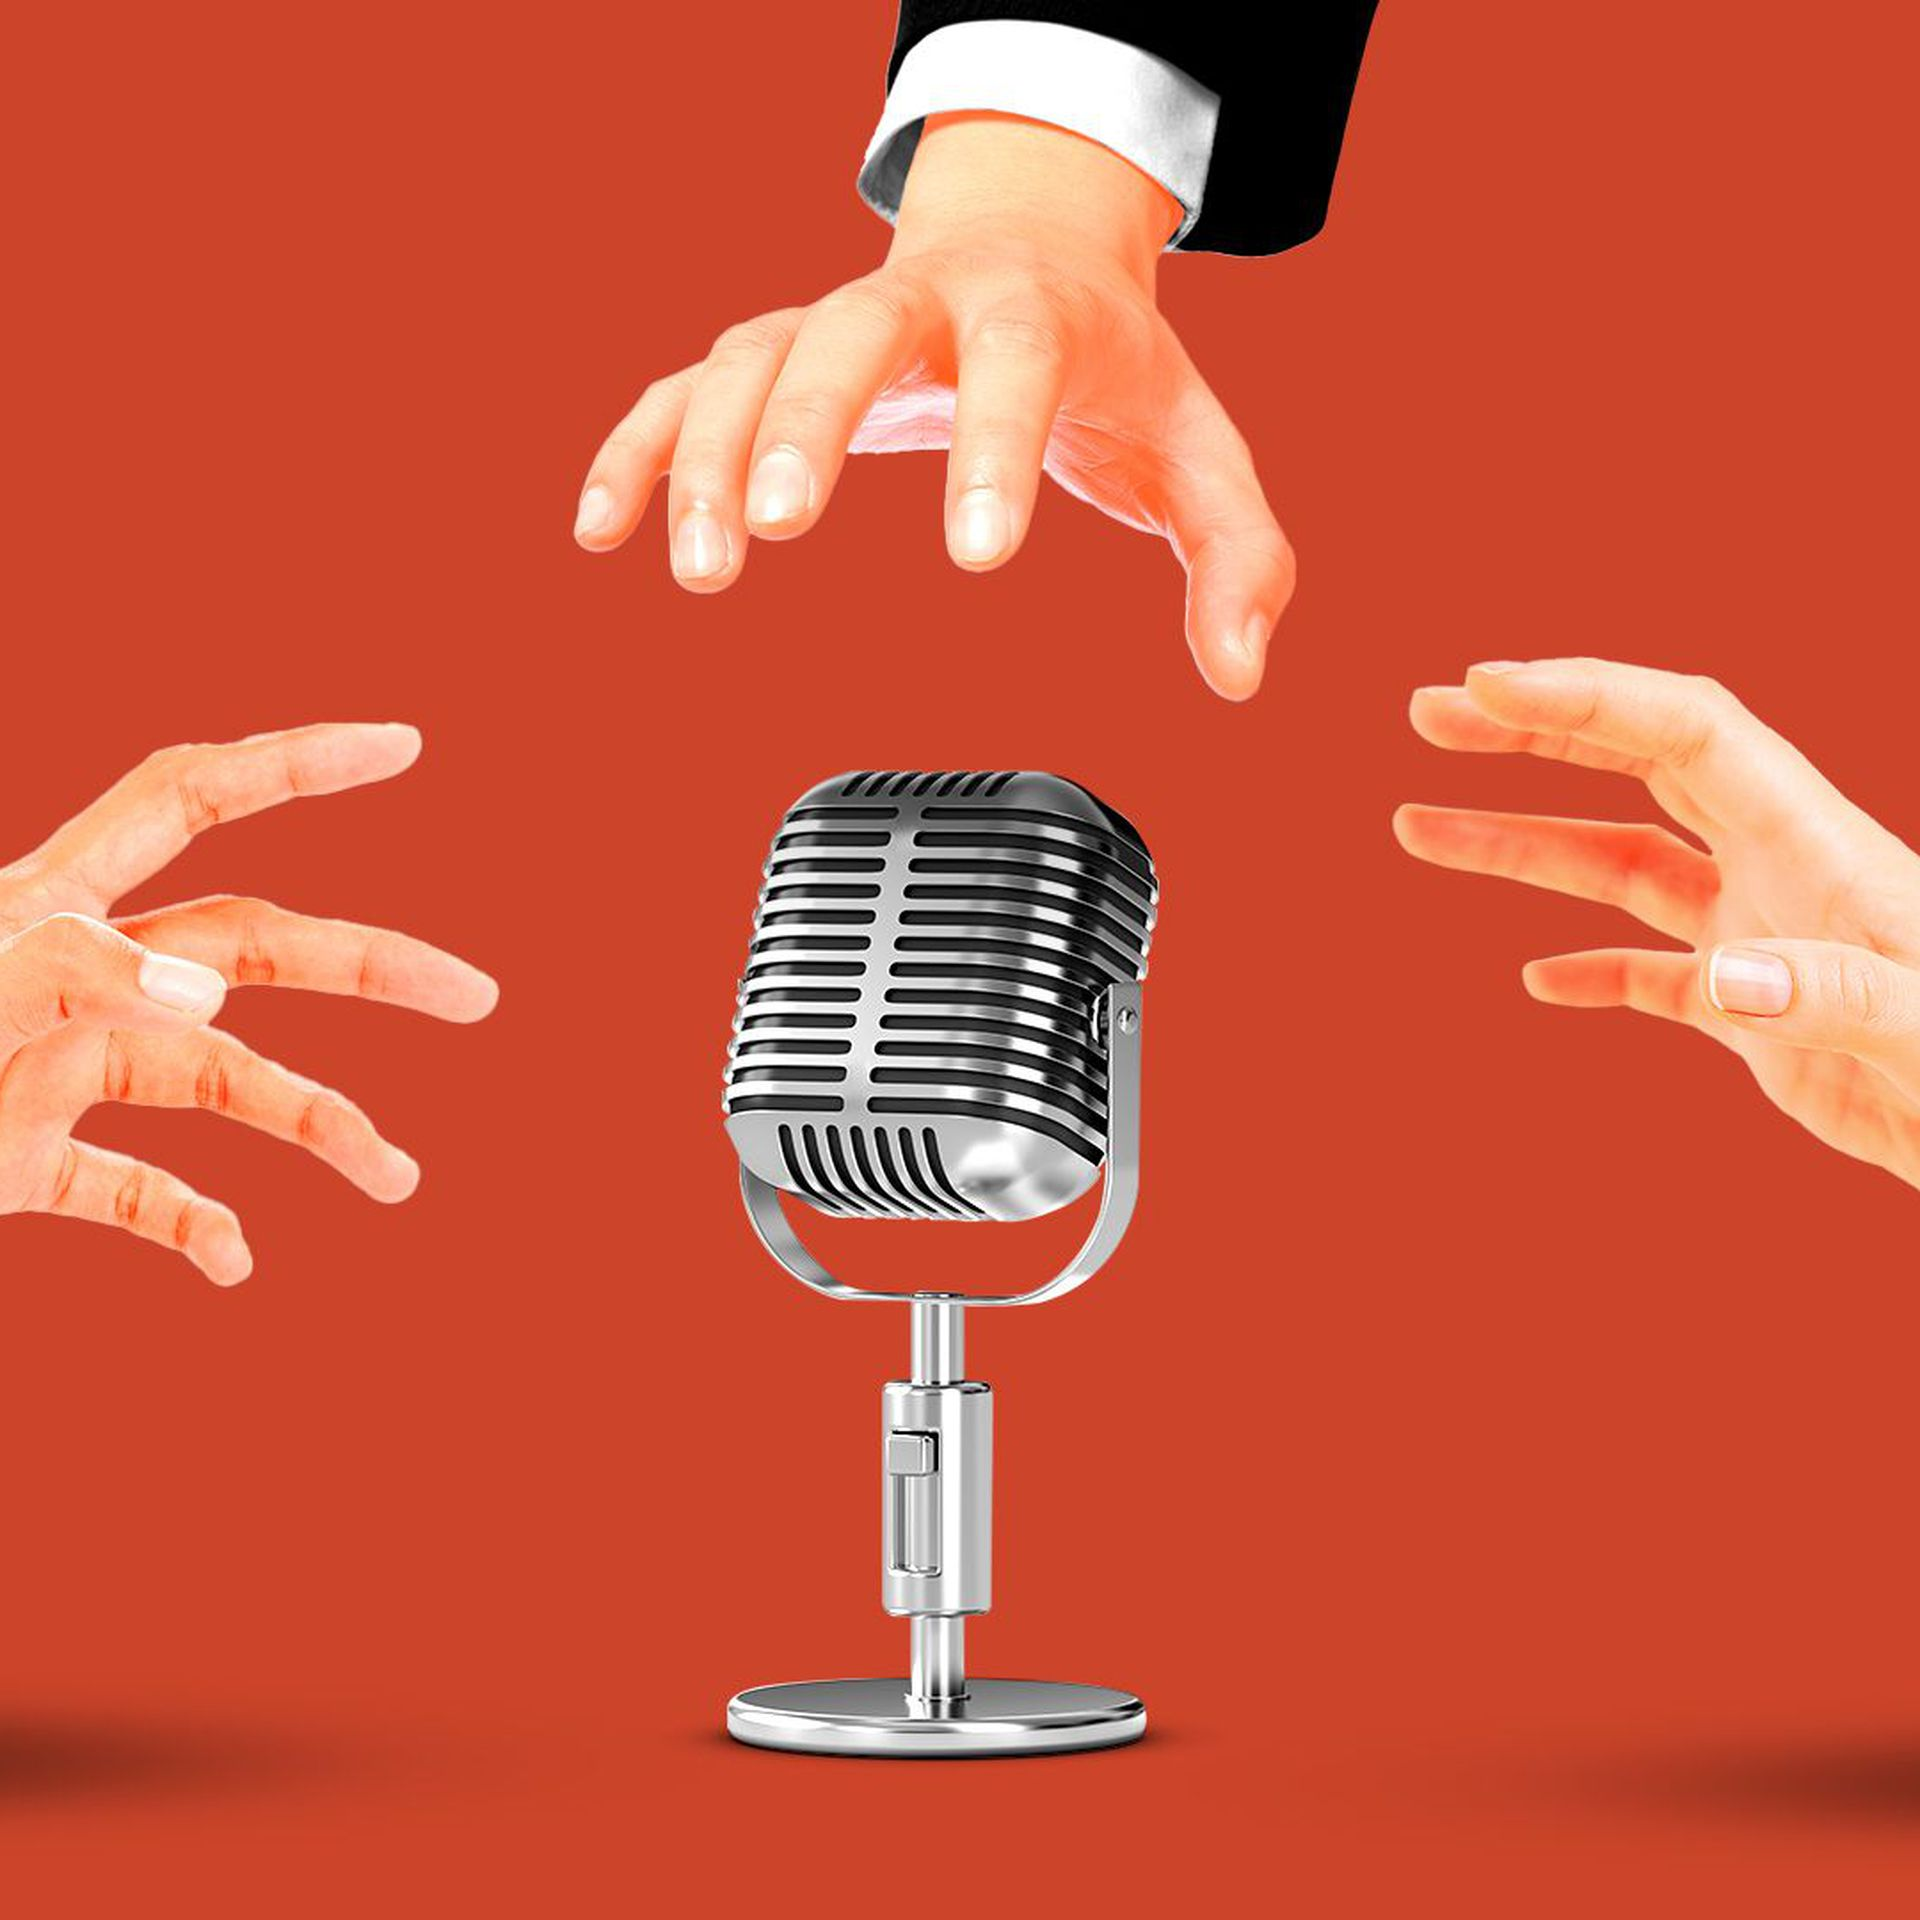 Illustration of hands reaching out for an old fashioned microphone.